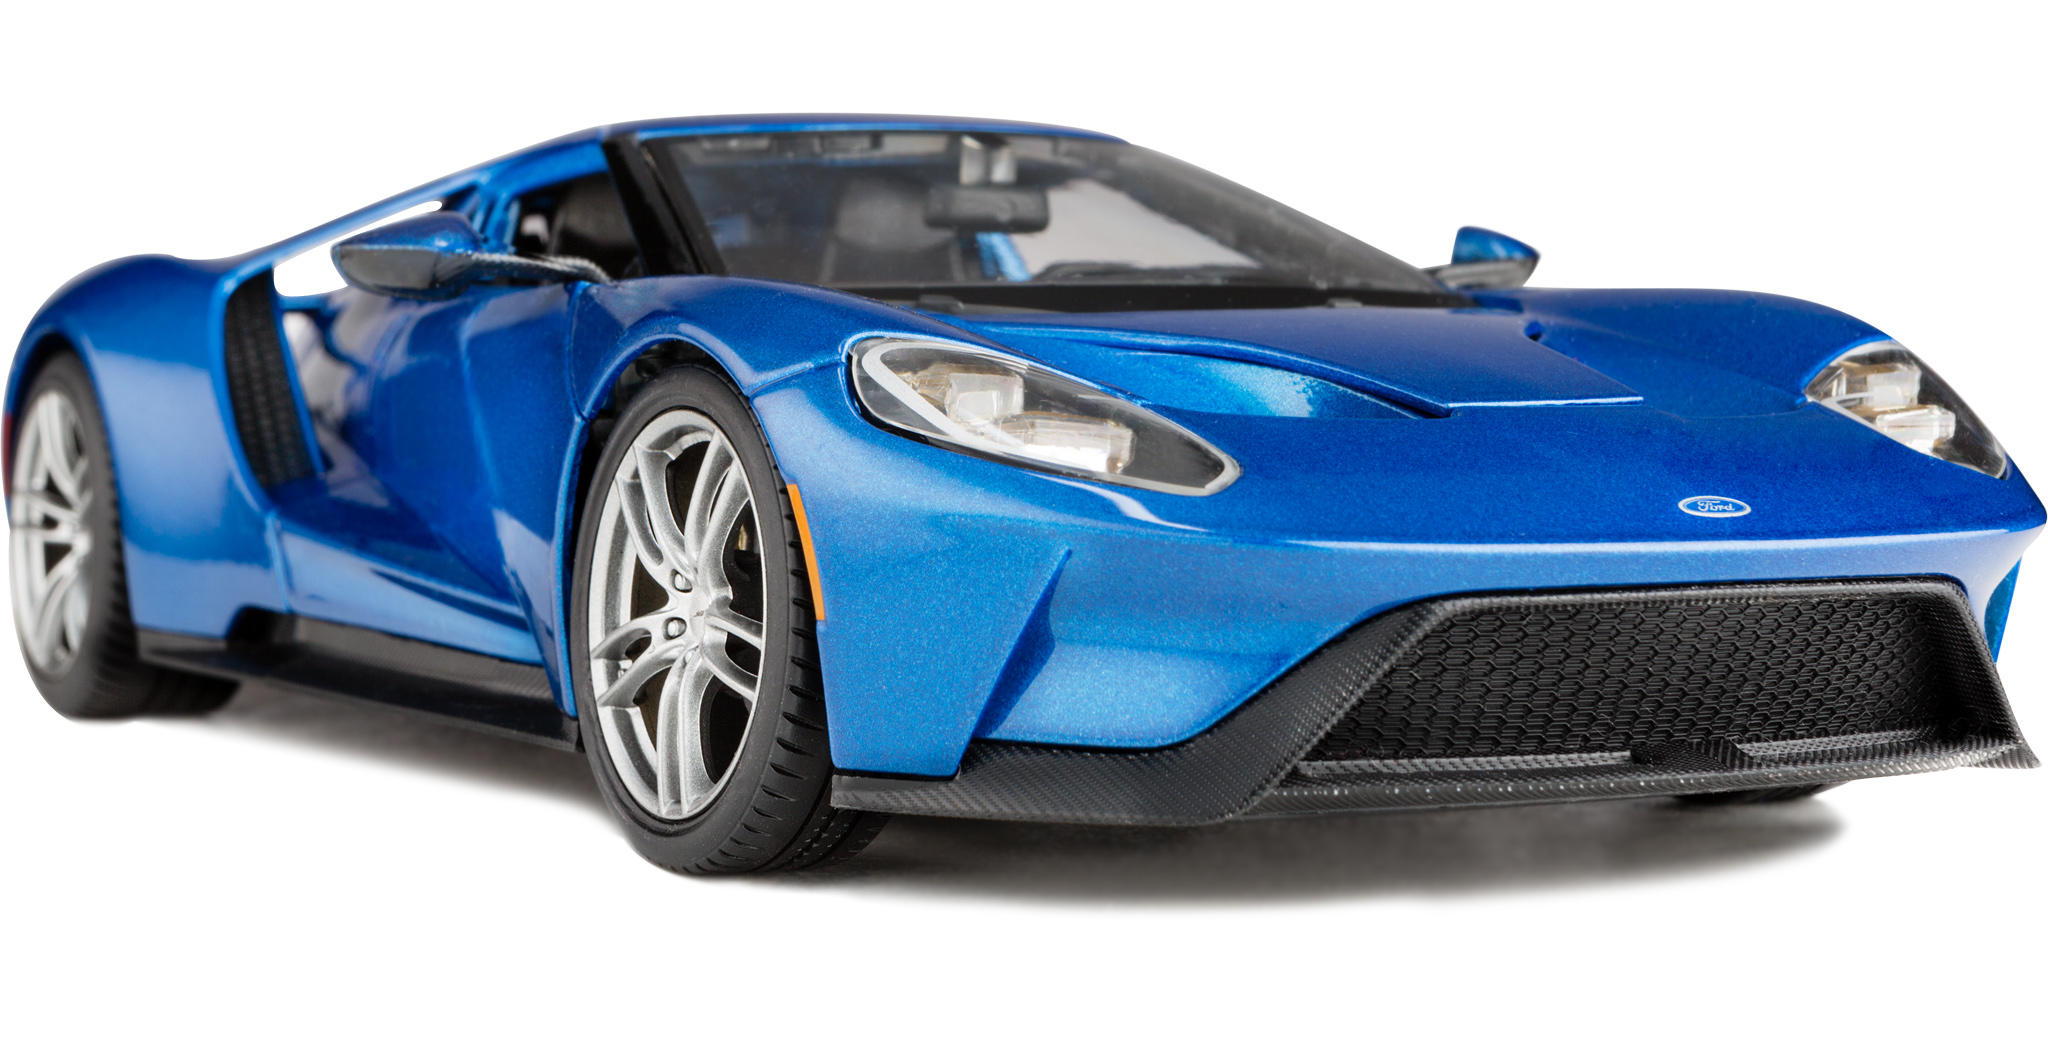 Maisto Ford Gt   Scalecate Model Car